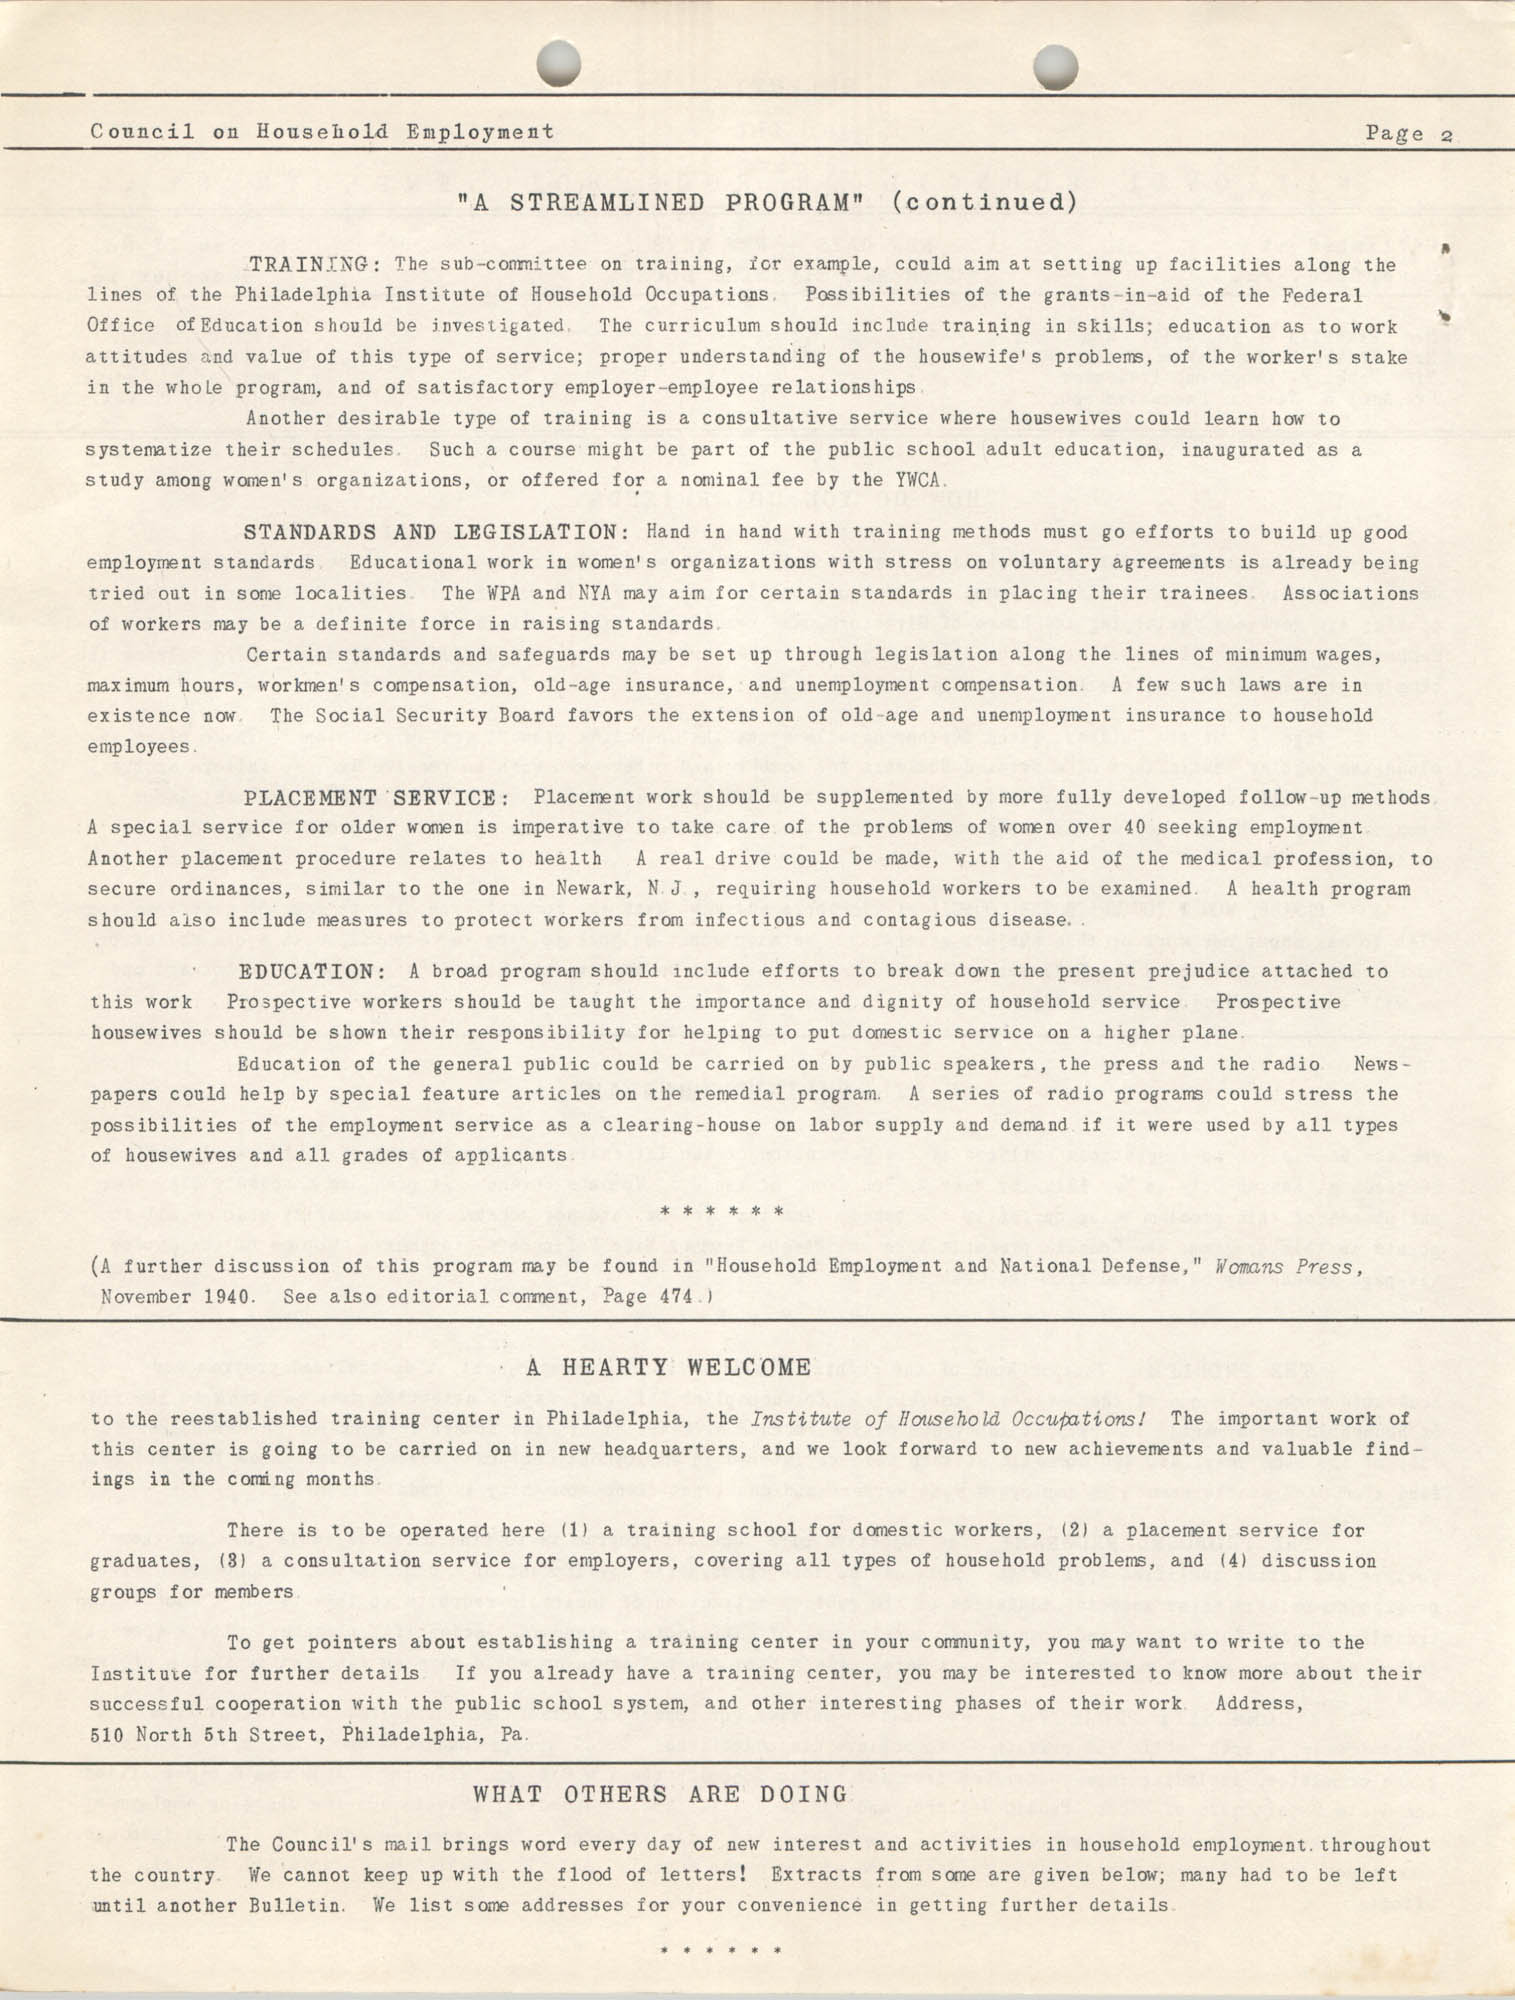 Bulletin of the National Council on Household Employment, Series II, No. 1, December 1940, Page 2